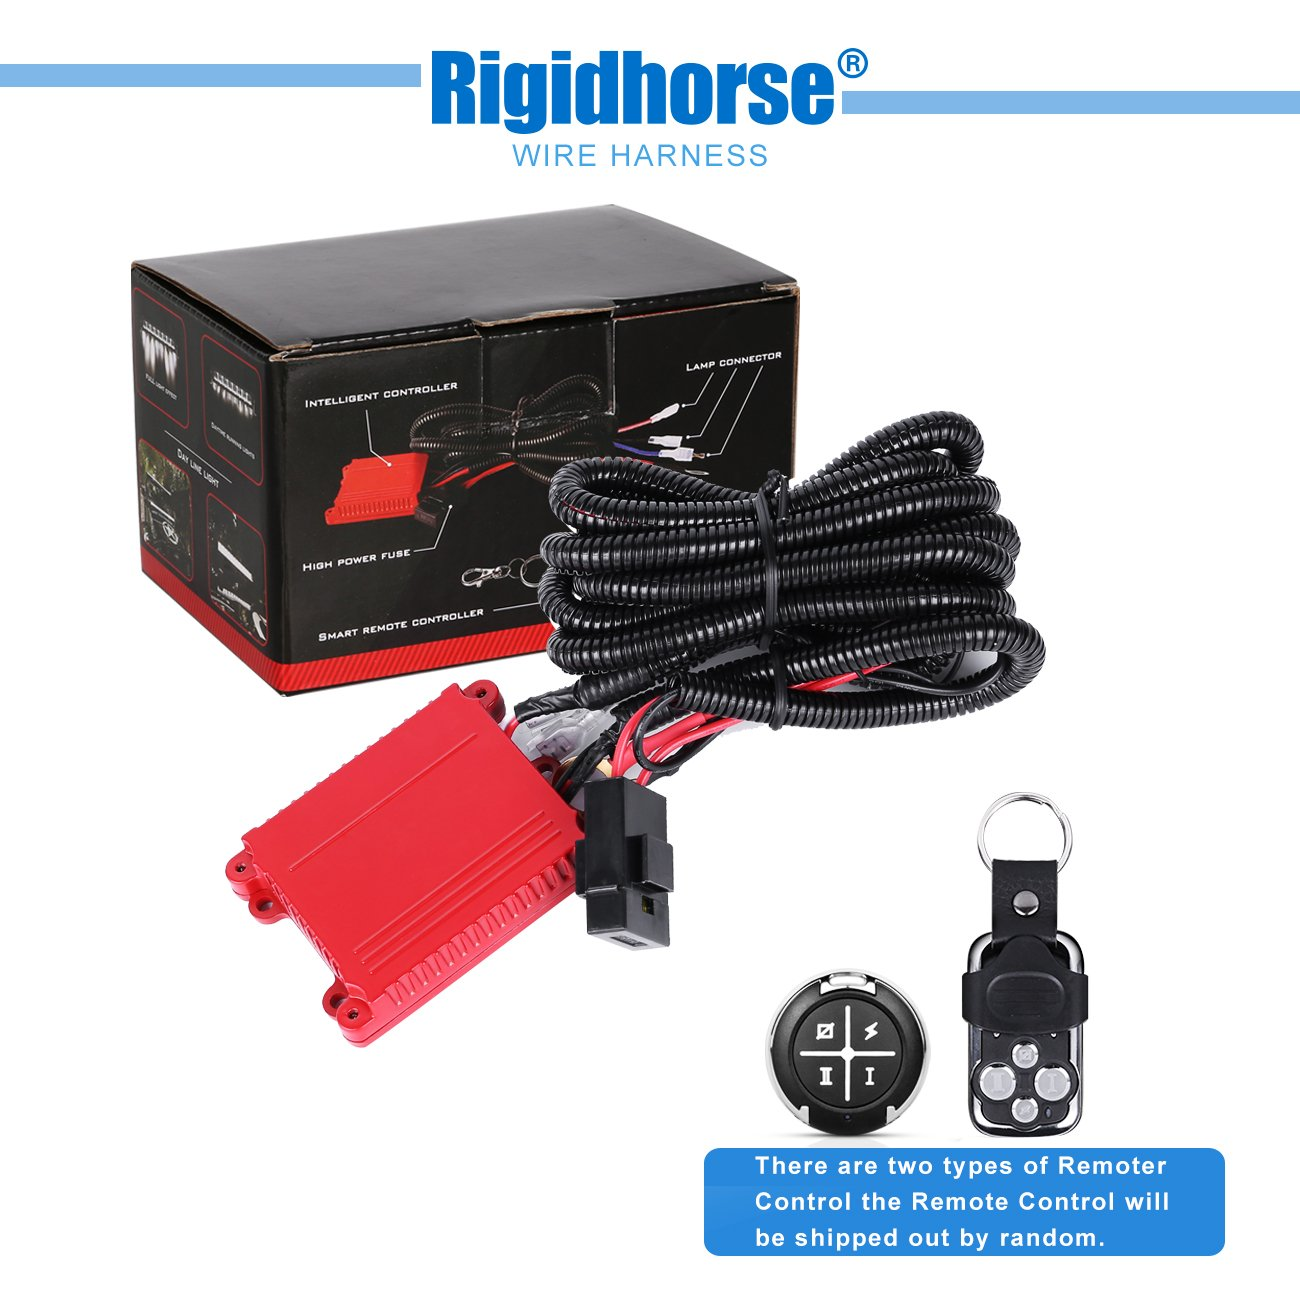 Wiring Harness Rigidhorse Remote Control 911 H4 Headlight Diagram Get Free Image About Kit For 8d Dual Mode Led Light Bar Universal Fitment Accessories Automotive